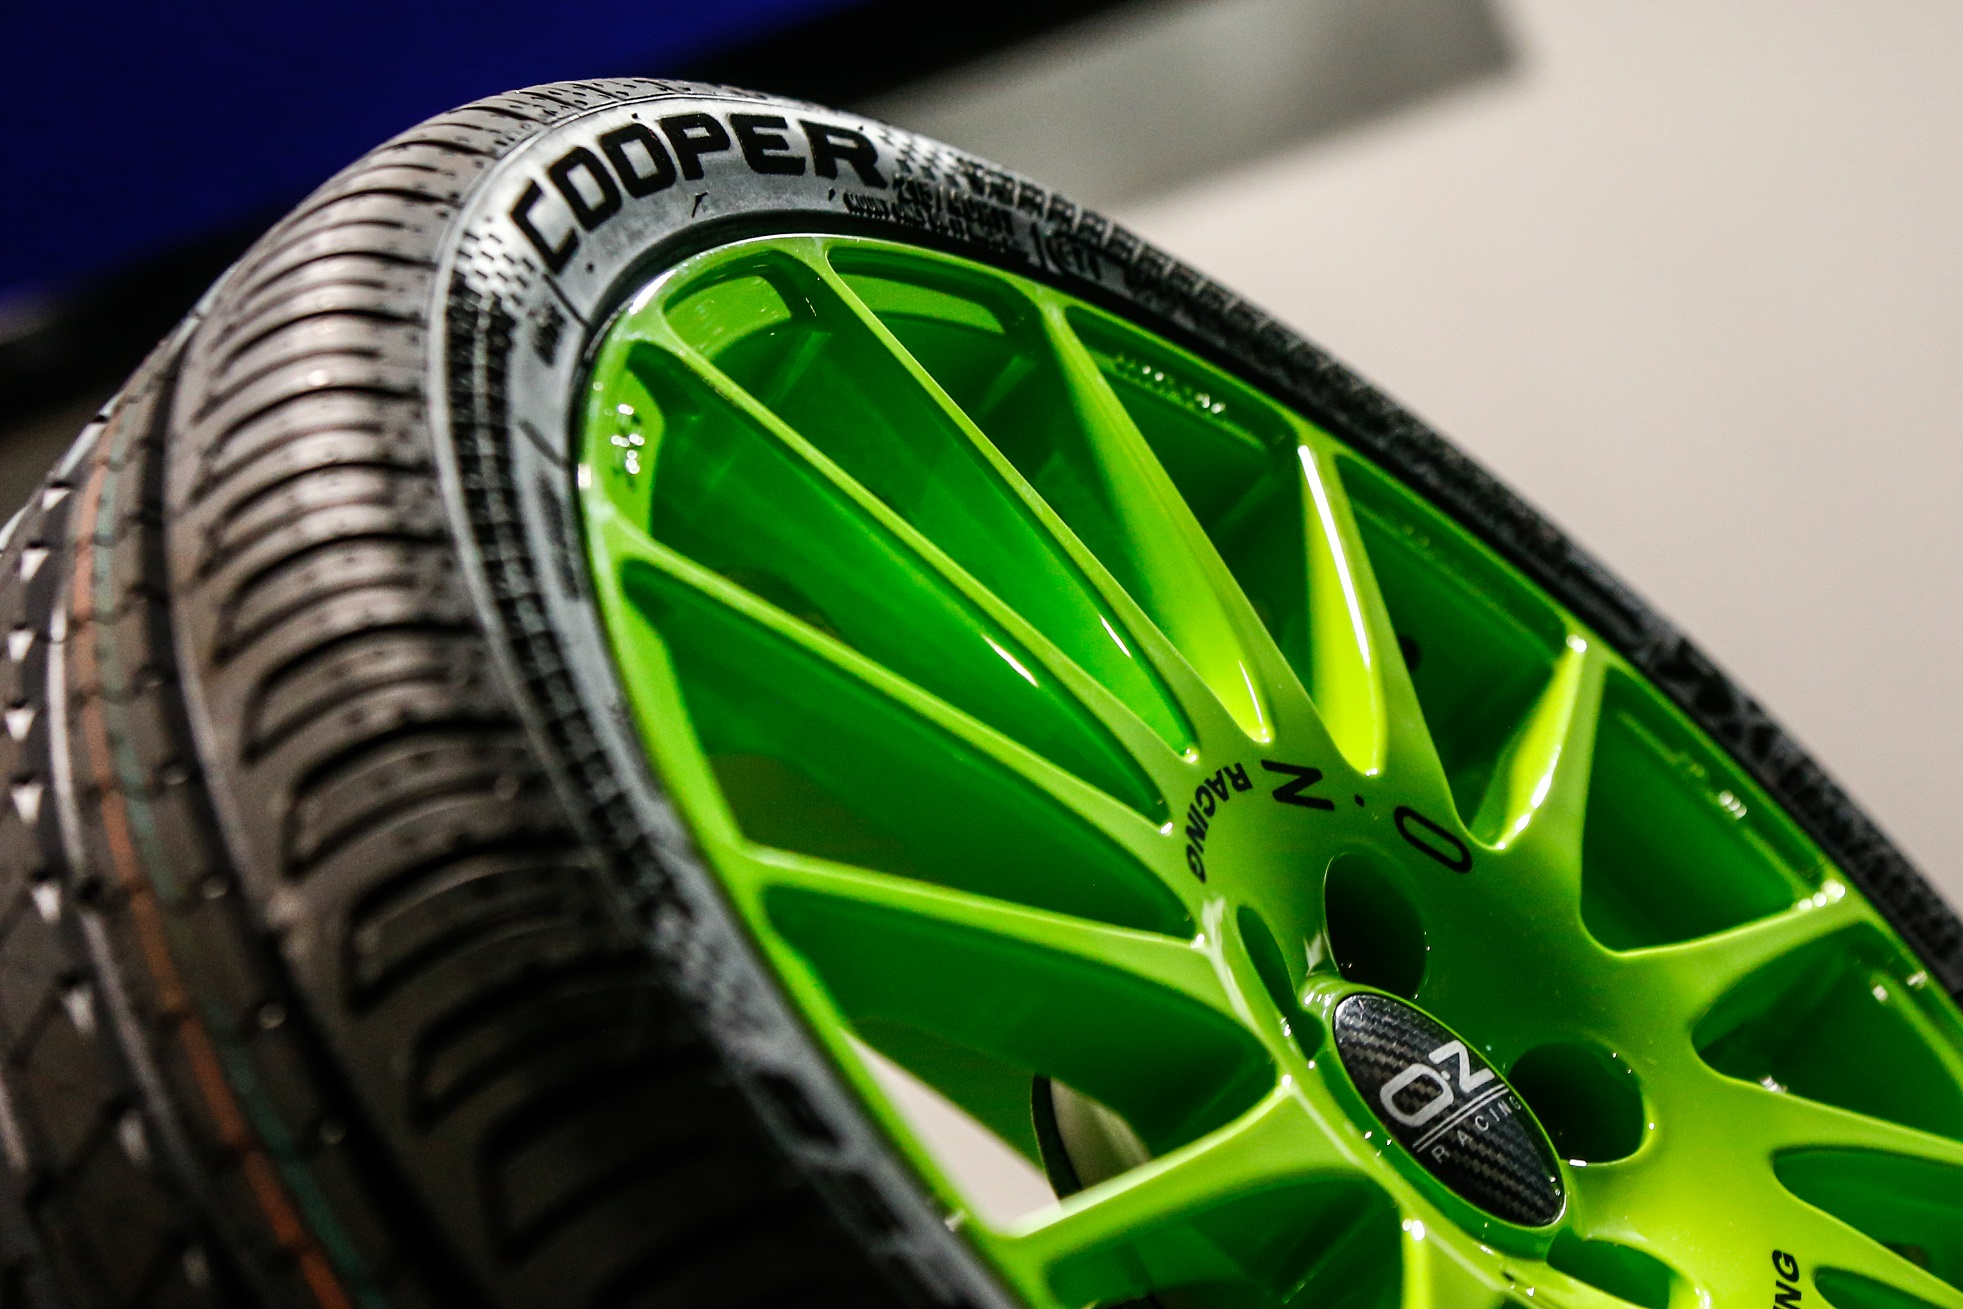 Cooper Zeon CS8 World RX limited edition - LR.jpg